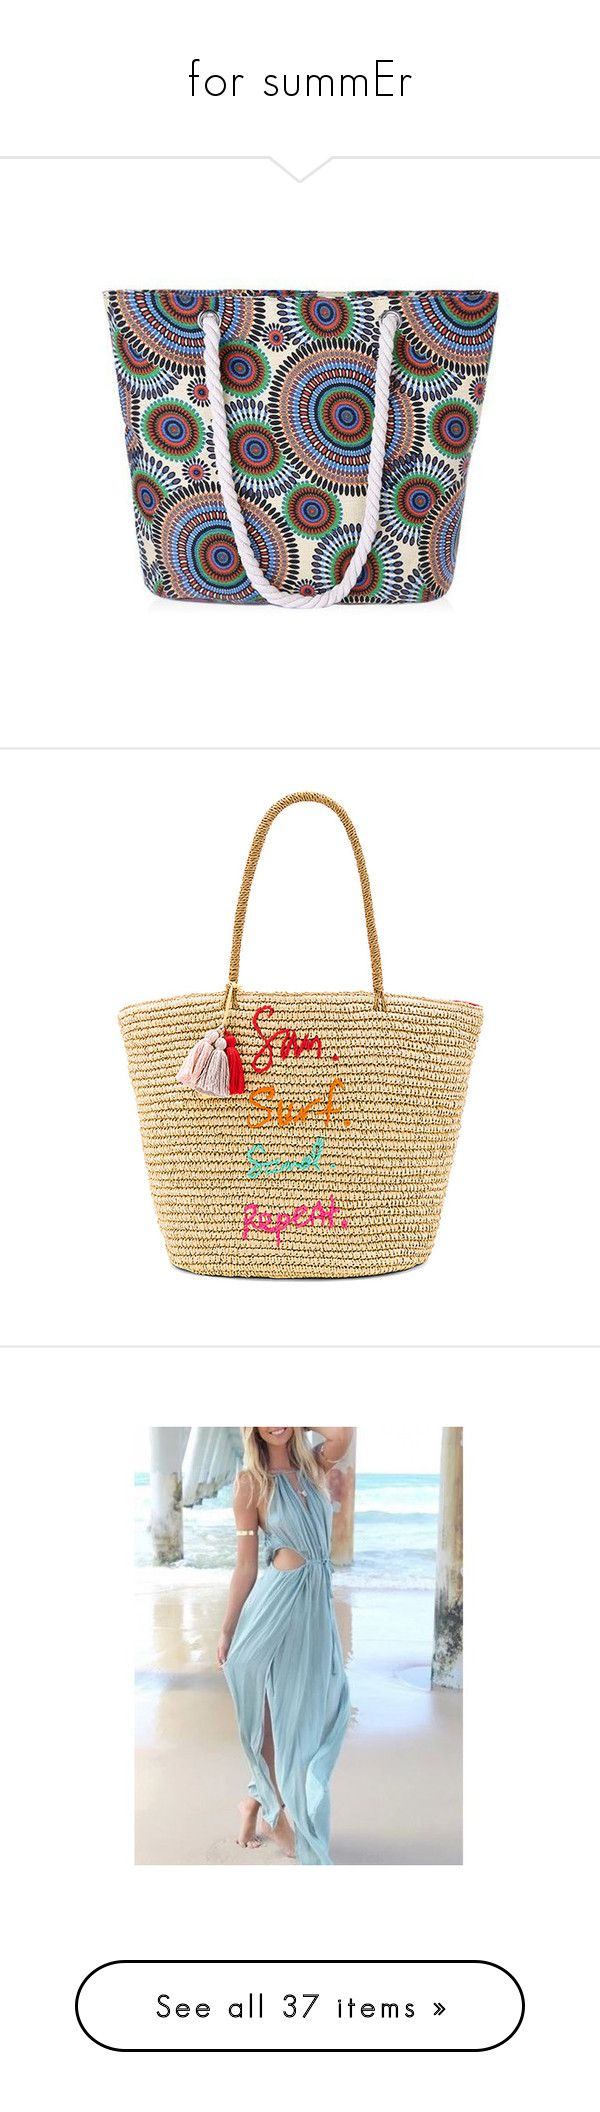 """""""for summEr"""" by ilze-s ❤ liked on Polyvore featuring bags, handbags, shoulder bags, sammydress, colorful purses, multi color purse, multi color handbag, colorful handbags, multi colored purses and tote bags"""